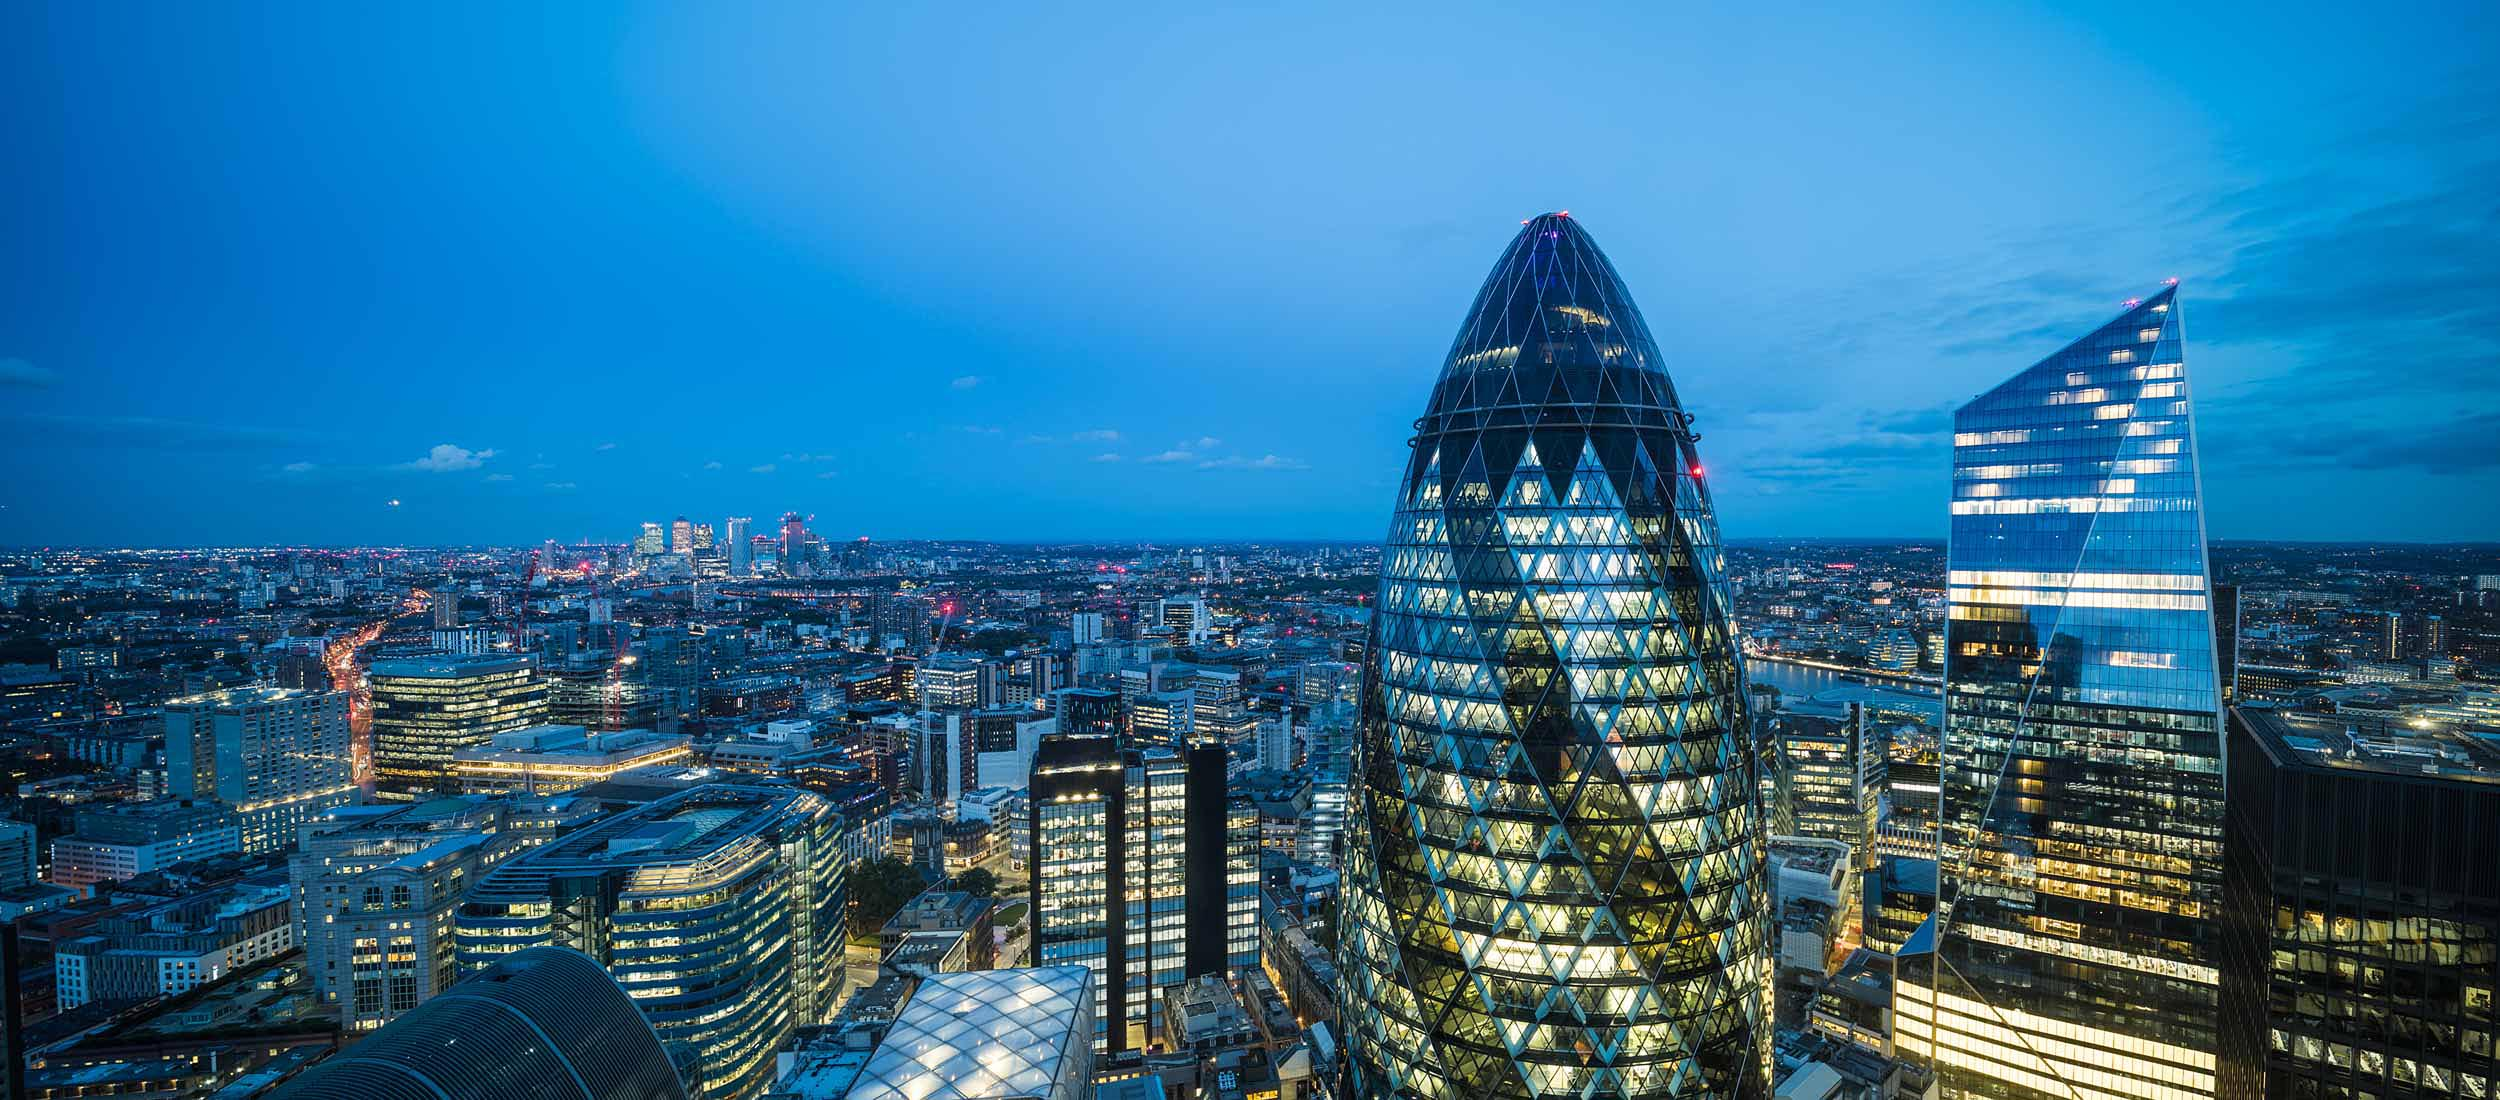 london-cityscape-night-gherkin-mary-axe-architecture-view